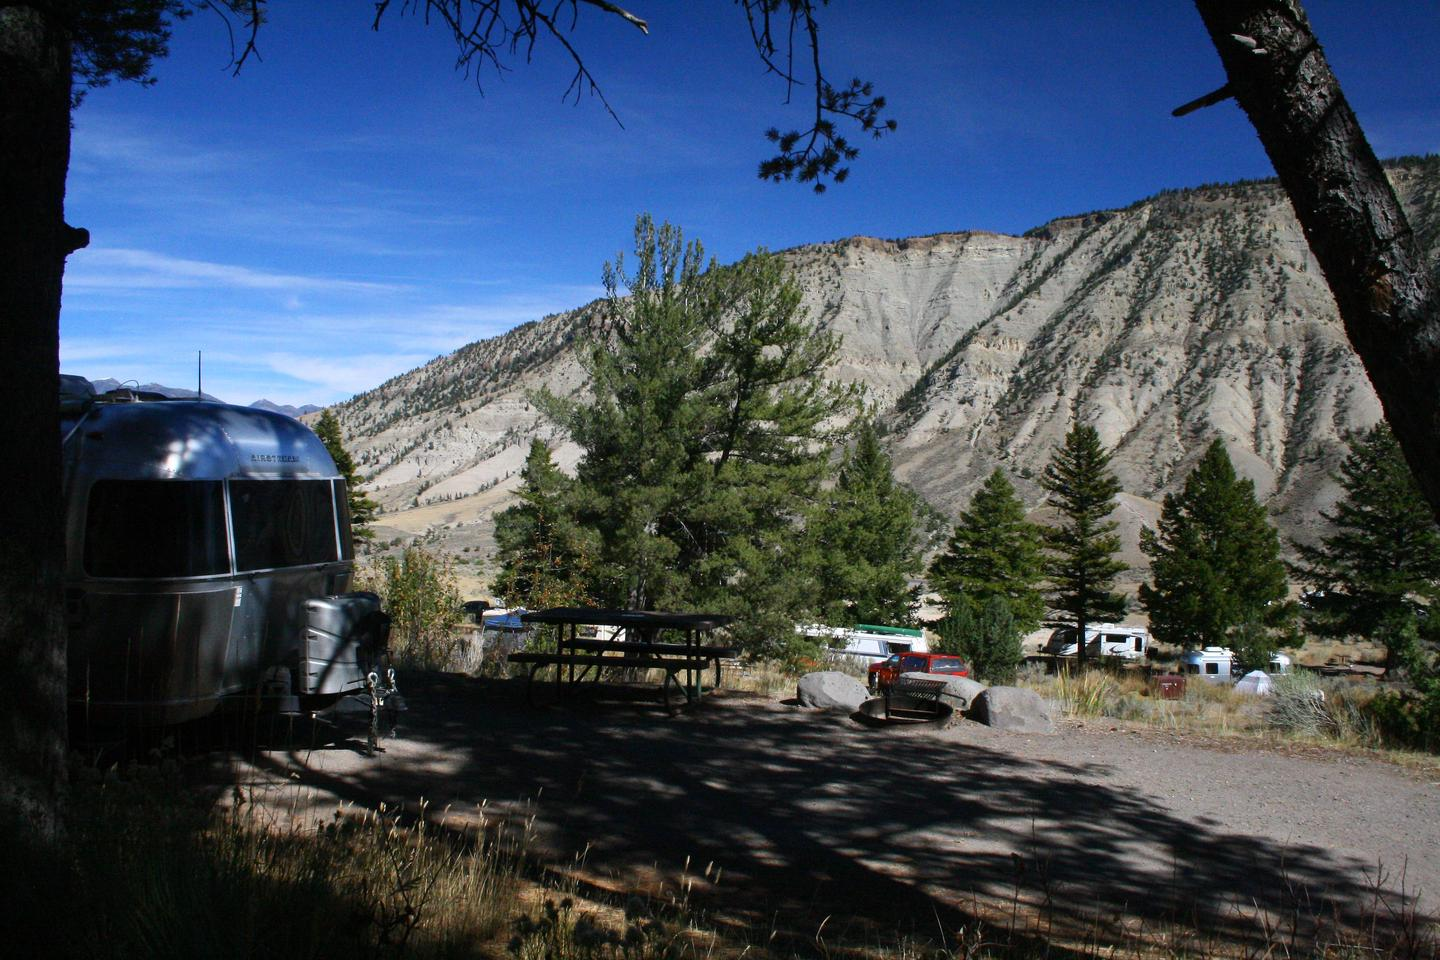 Mammoth Hot Springs Campground Site 53Mammoth Campsite #53